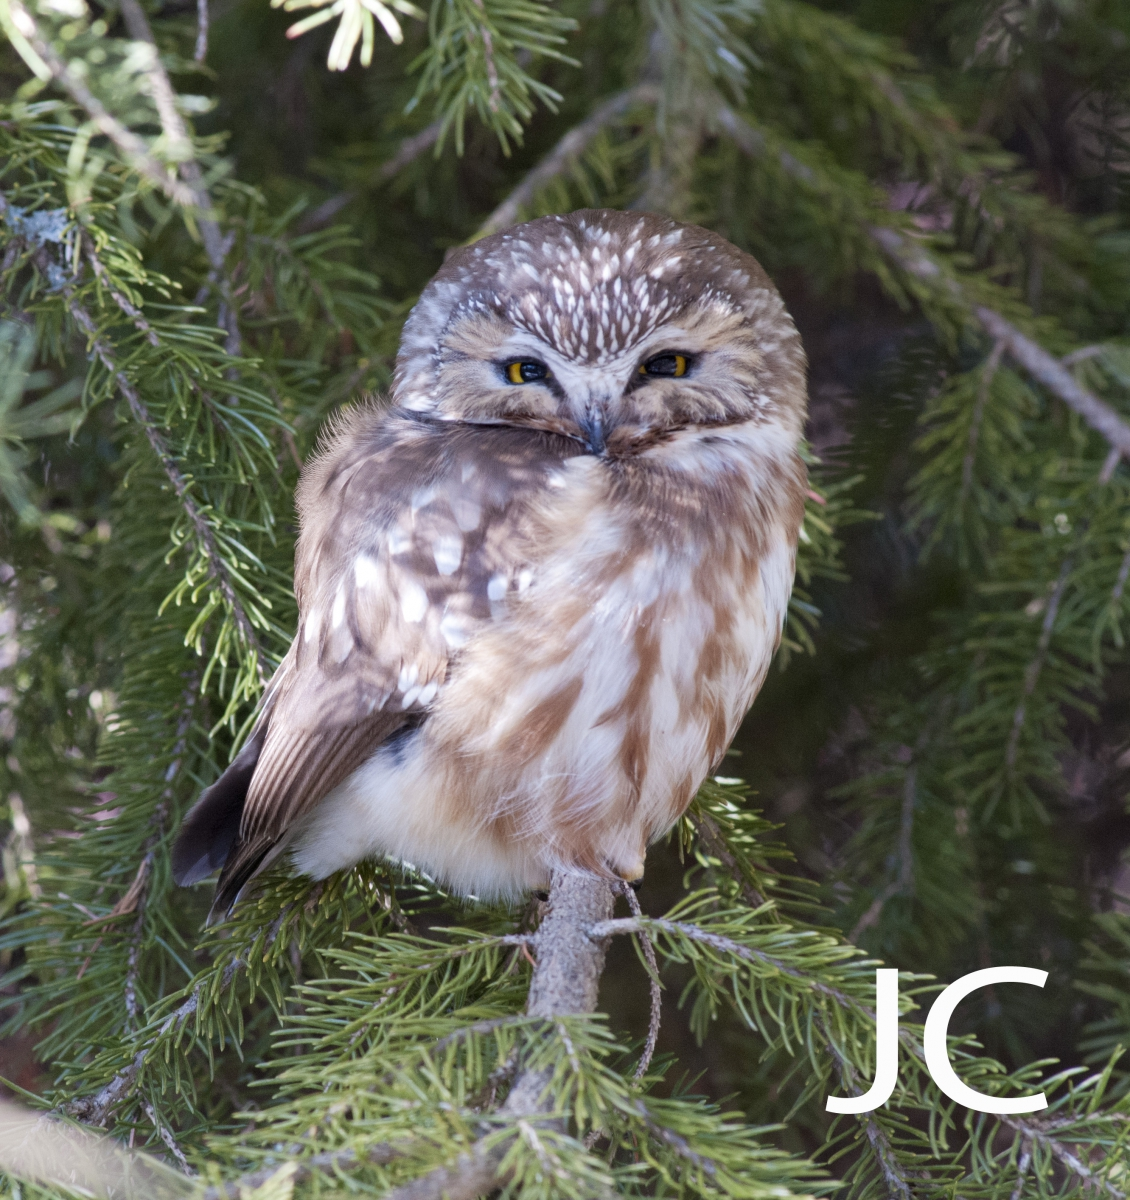 birds in your backyard by guest and rom biodiversity friend jill